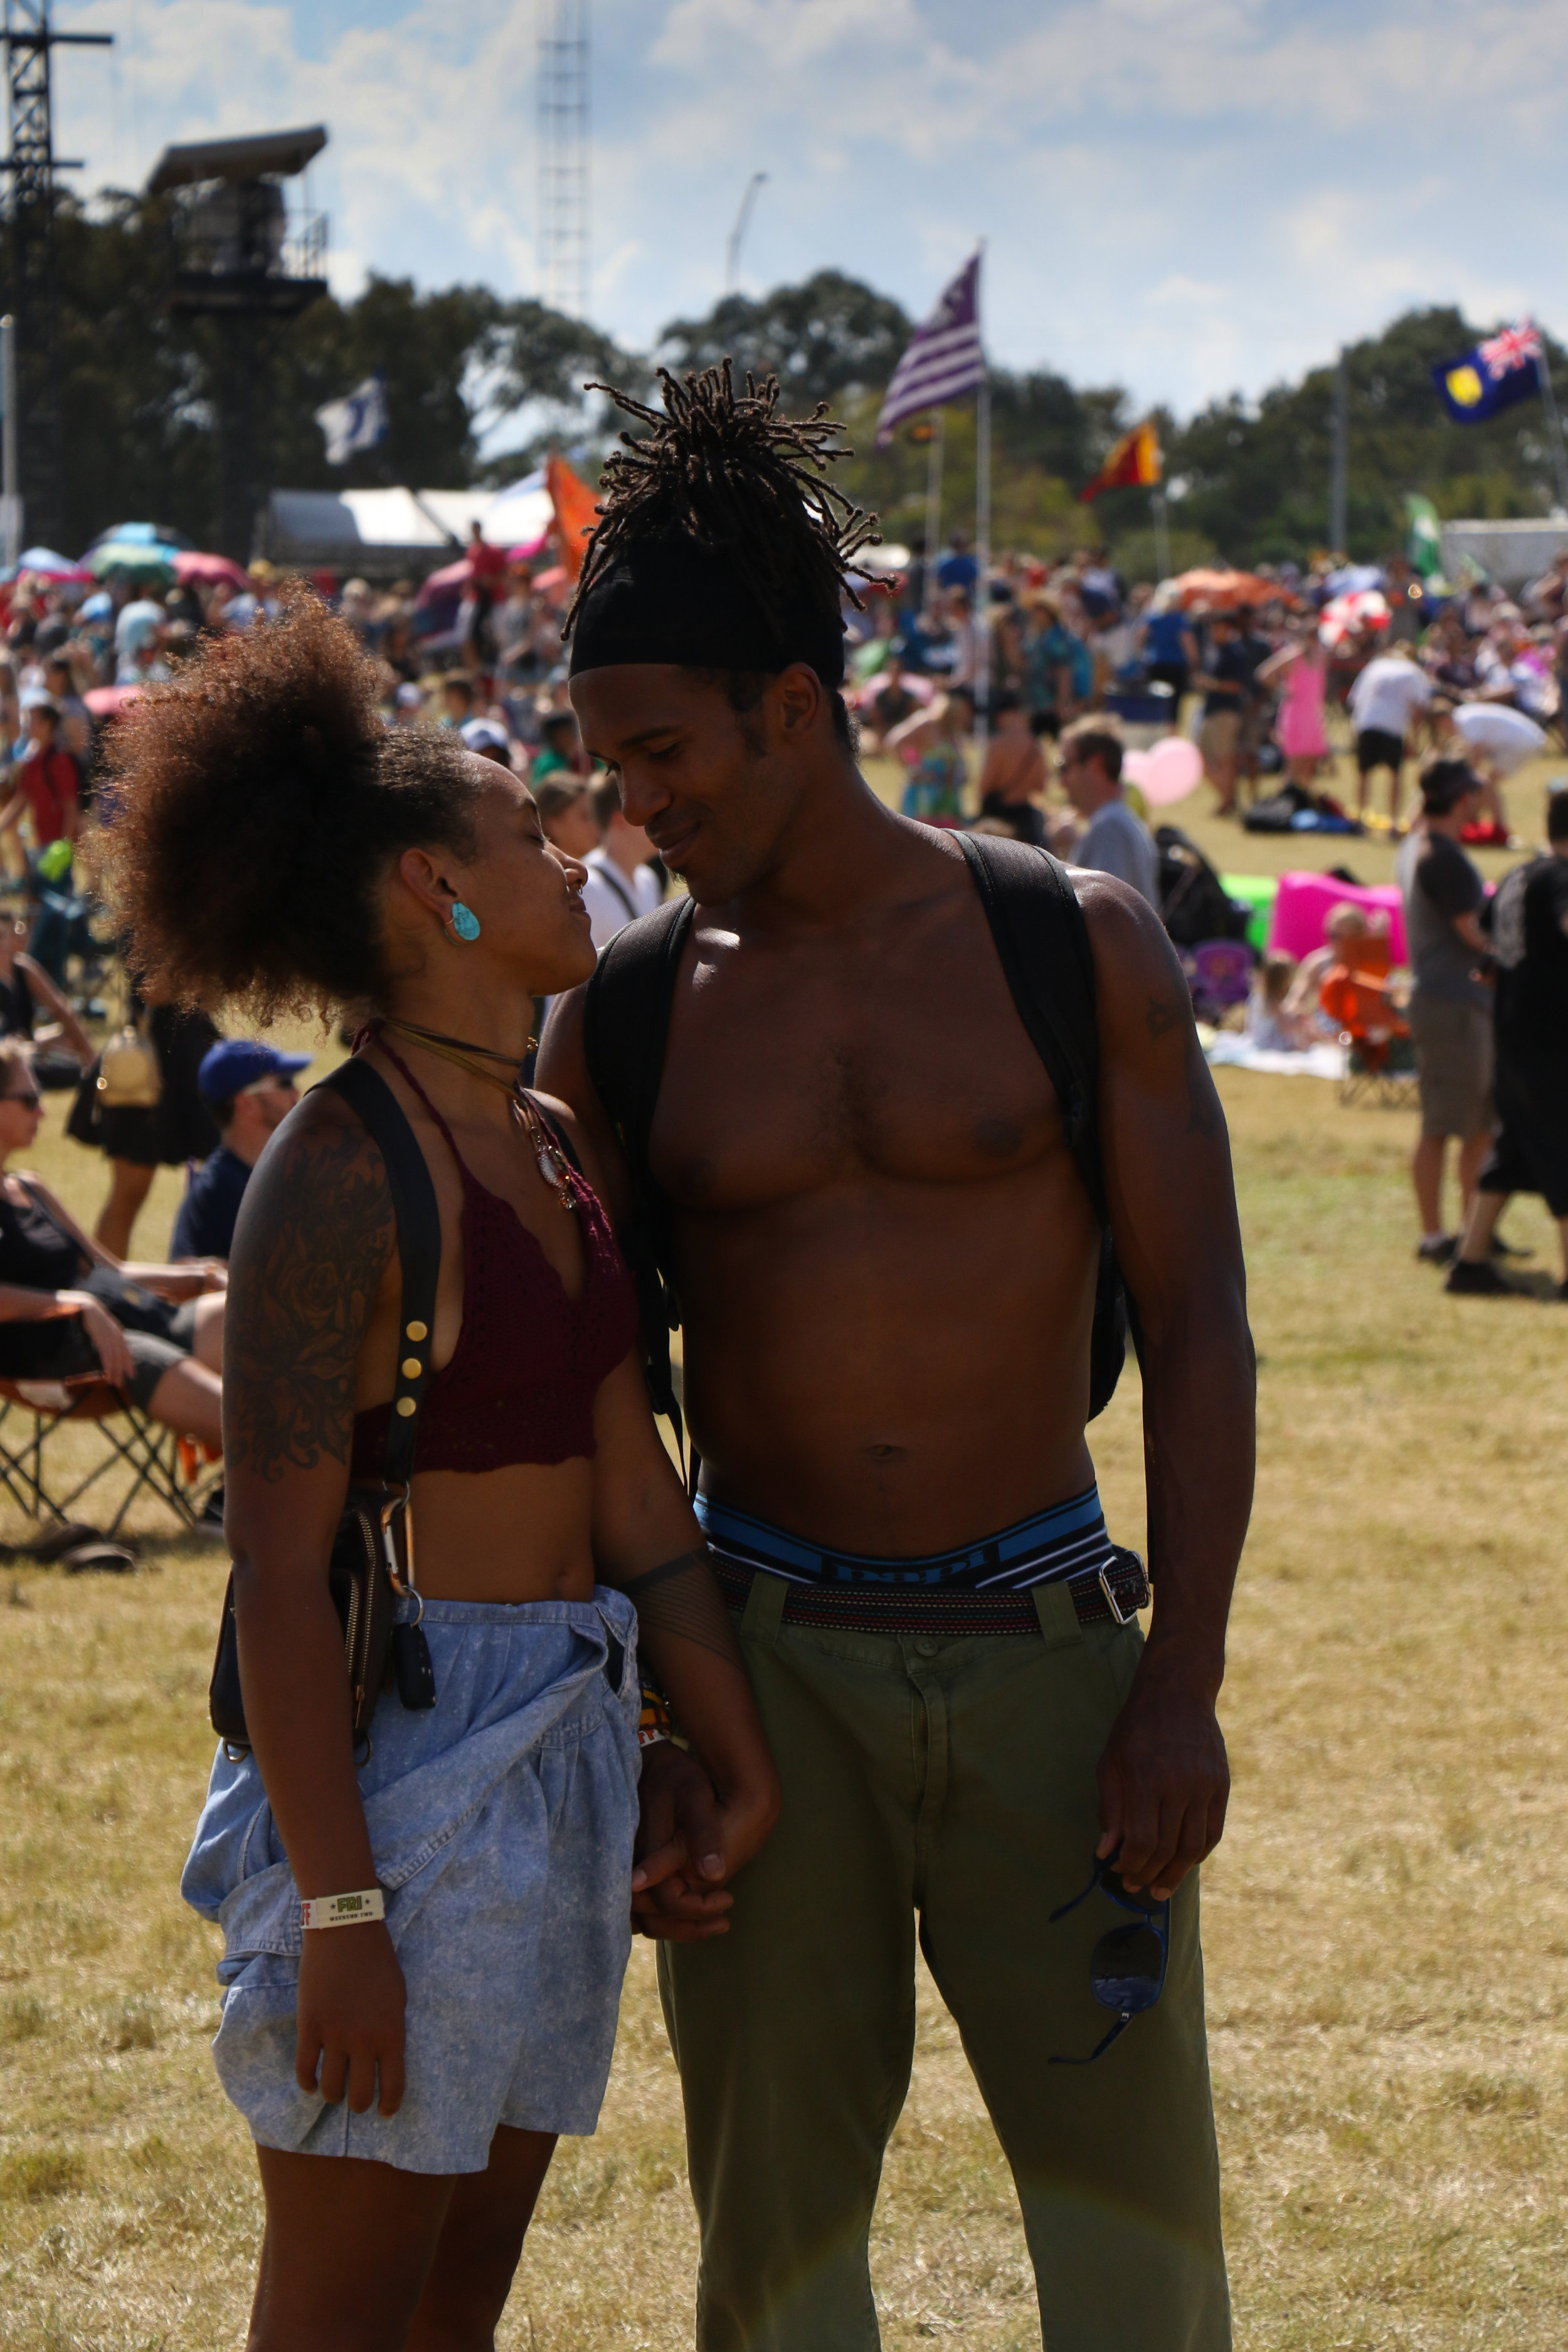 An ACL couple are captured in this sweet moment at Zilker.